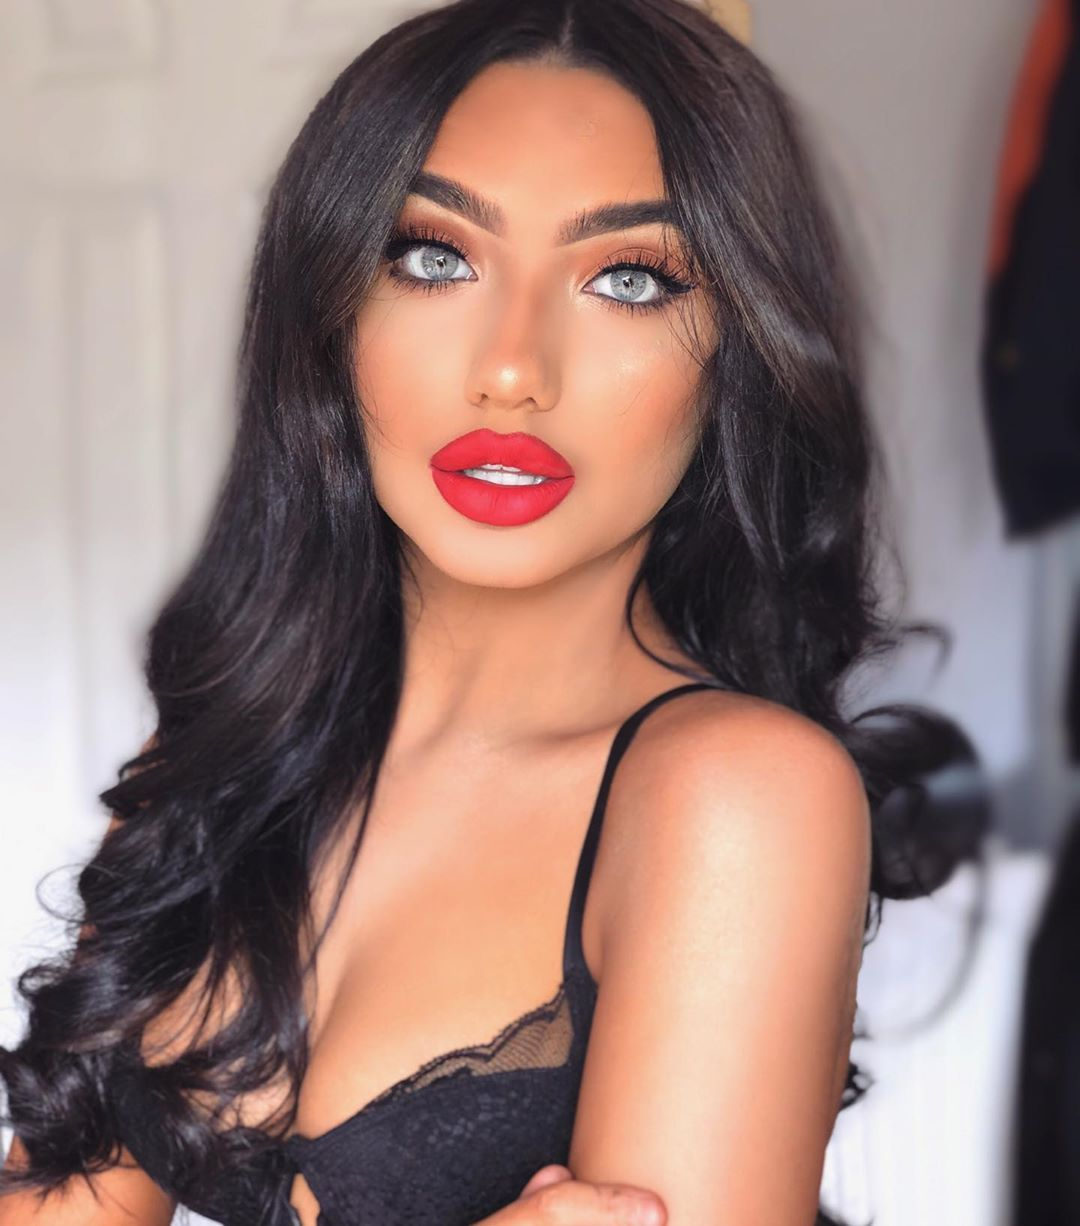 Image may contain: Love Island late arrivals, Love Island, 2019, Jazmine Nichol, cast, contestant,  Lingerie, Underwear, Cosmetics, Lipstick, Black Hair, Apparel, Clothing, Hair, Face, Person, Human